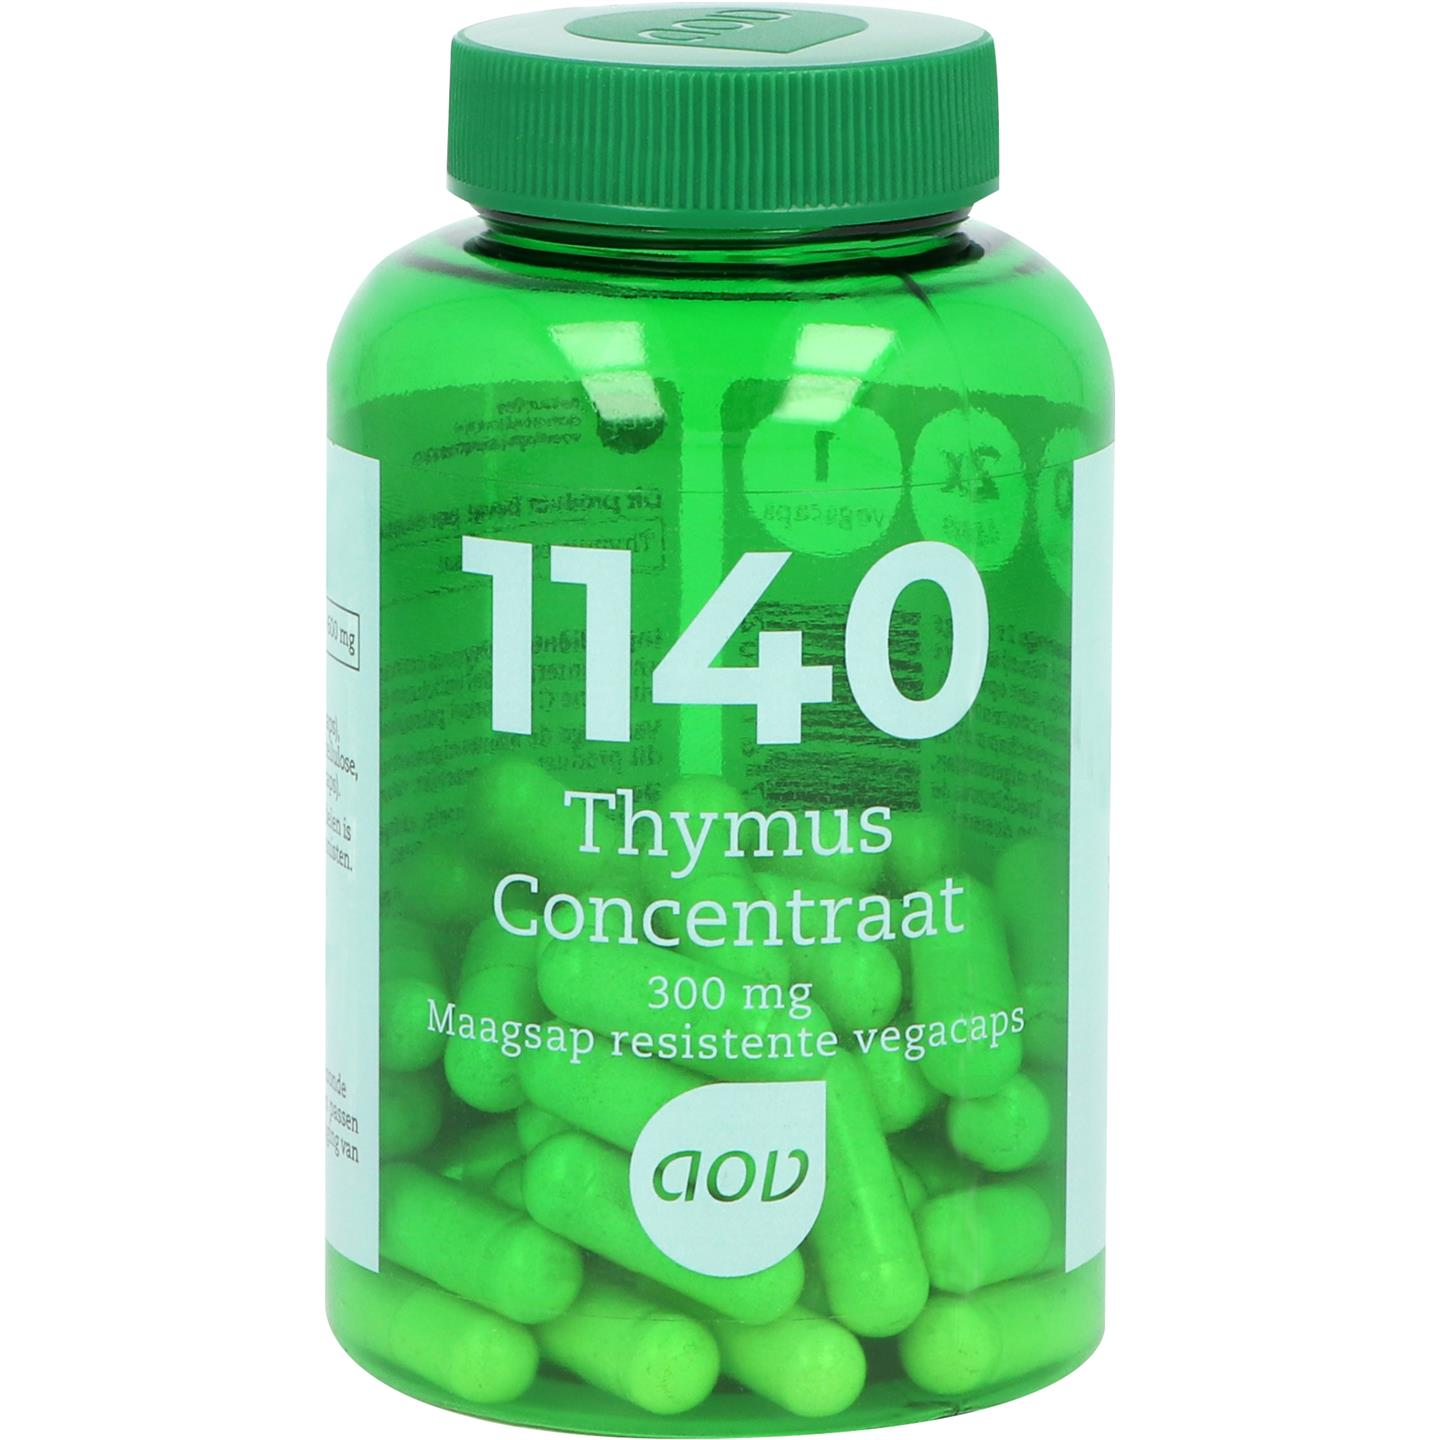 1140 Thymus concentraat